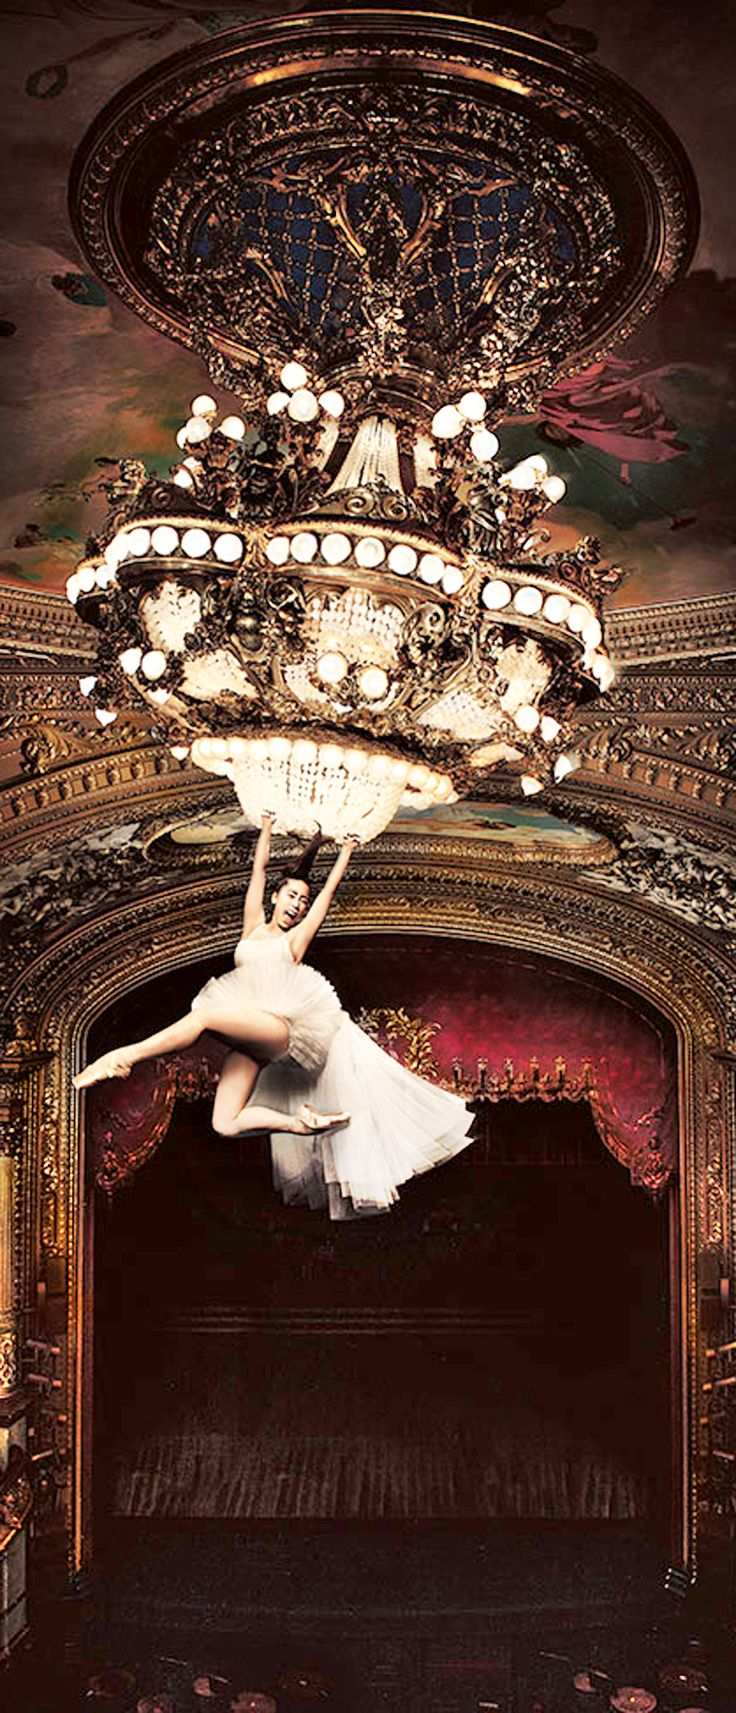 76 best dance images on pinterest photography ballet dancers and may we all have a swing from the chandelier kind of new year tg arubaitofo Image collections